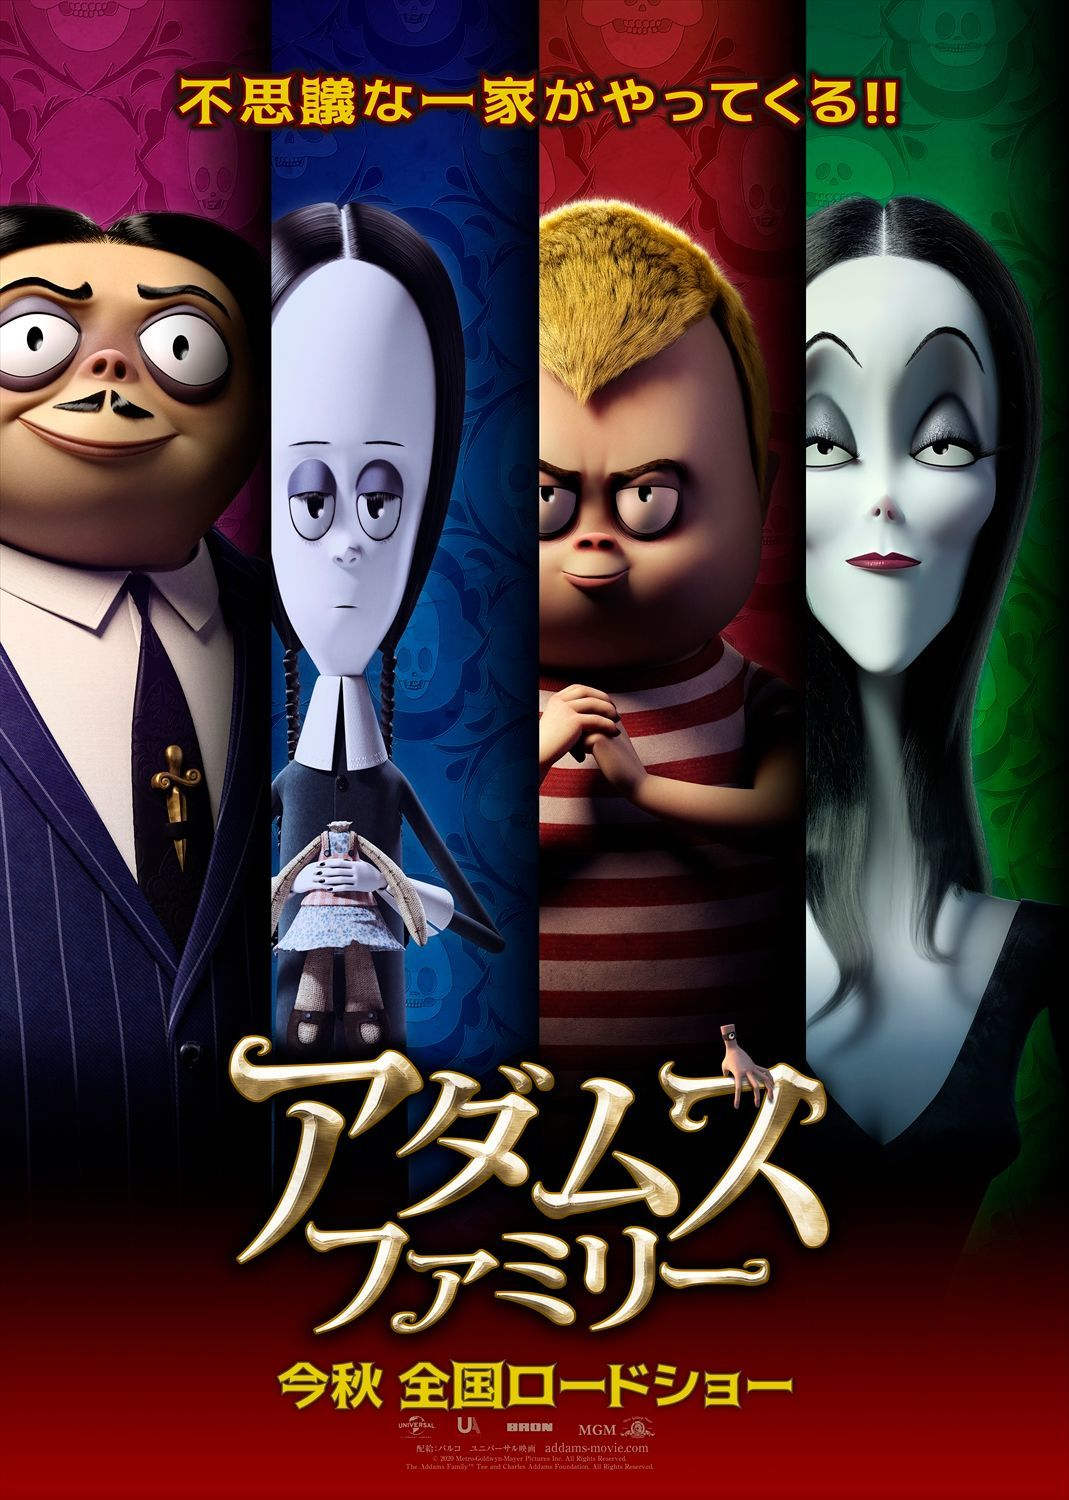 (C)2020 Metro-Goldwyn-Mayer Pictures Inc. All Rights Reserved.  The Addams Family  (TM) Tee and Charles Addams Foundation. All Rights Reserved.